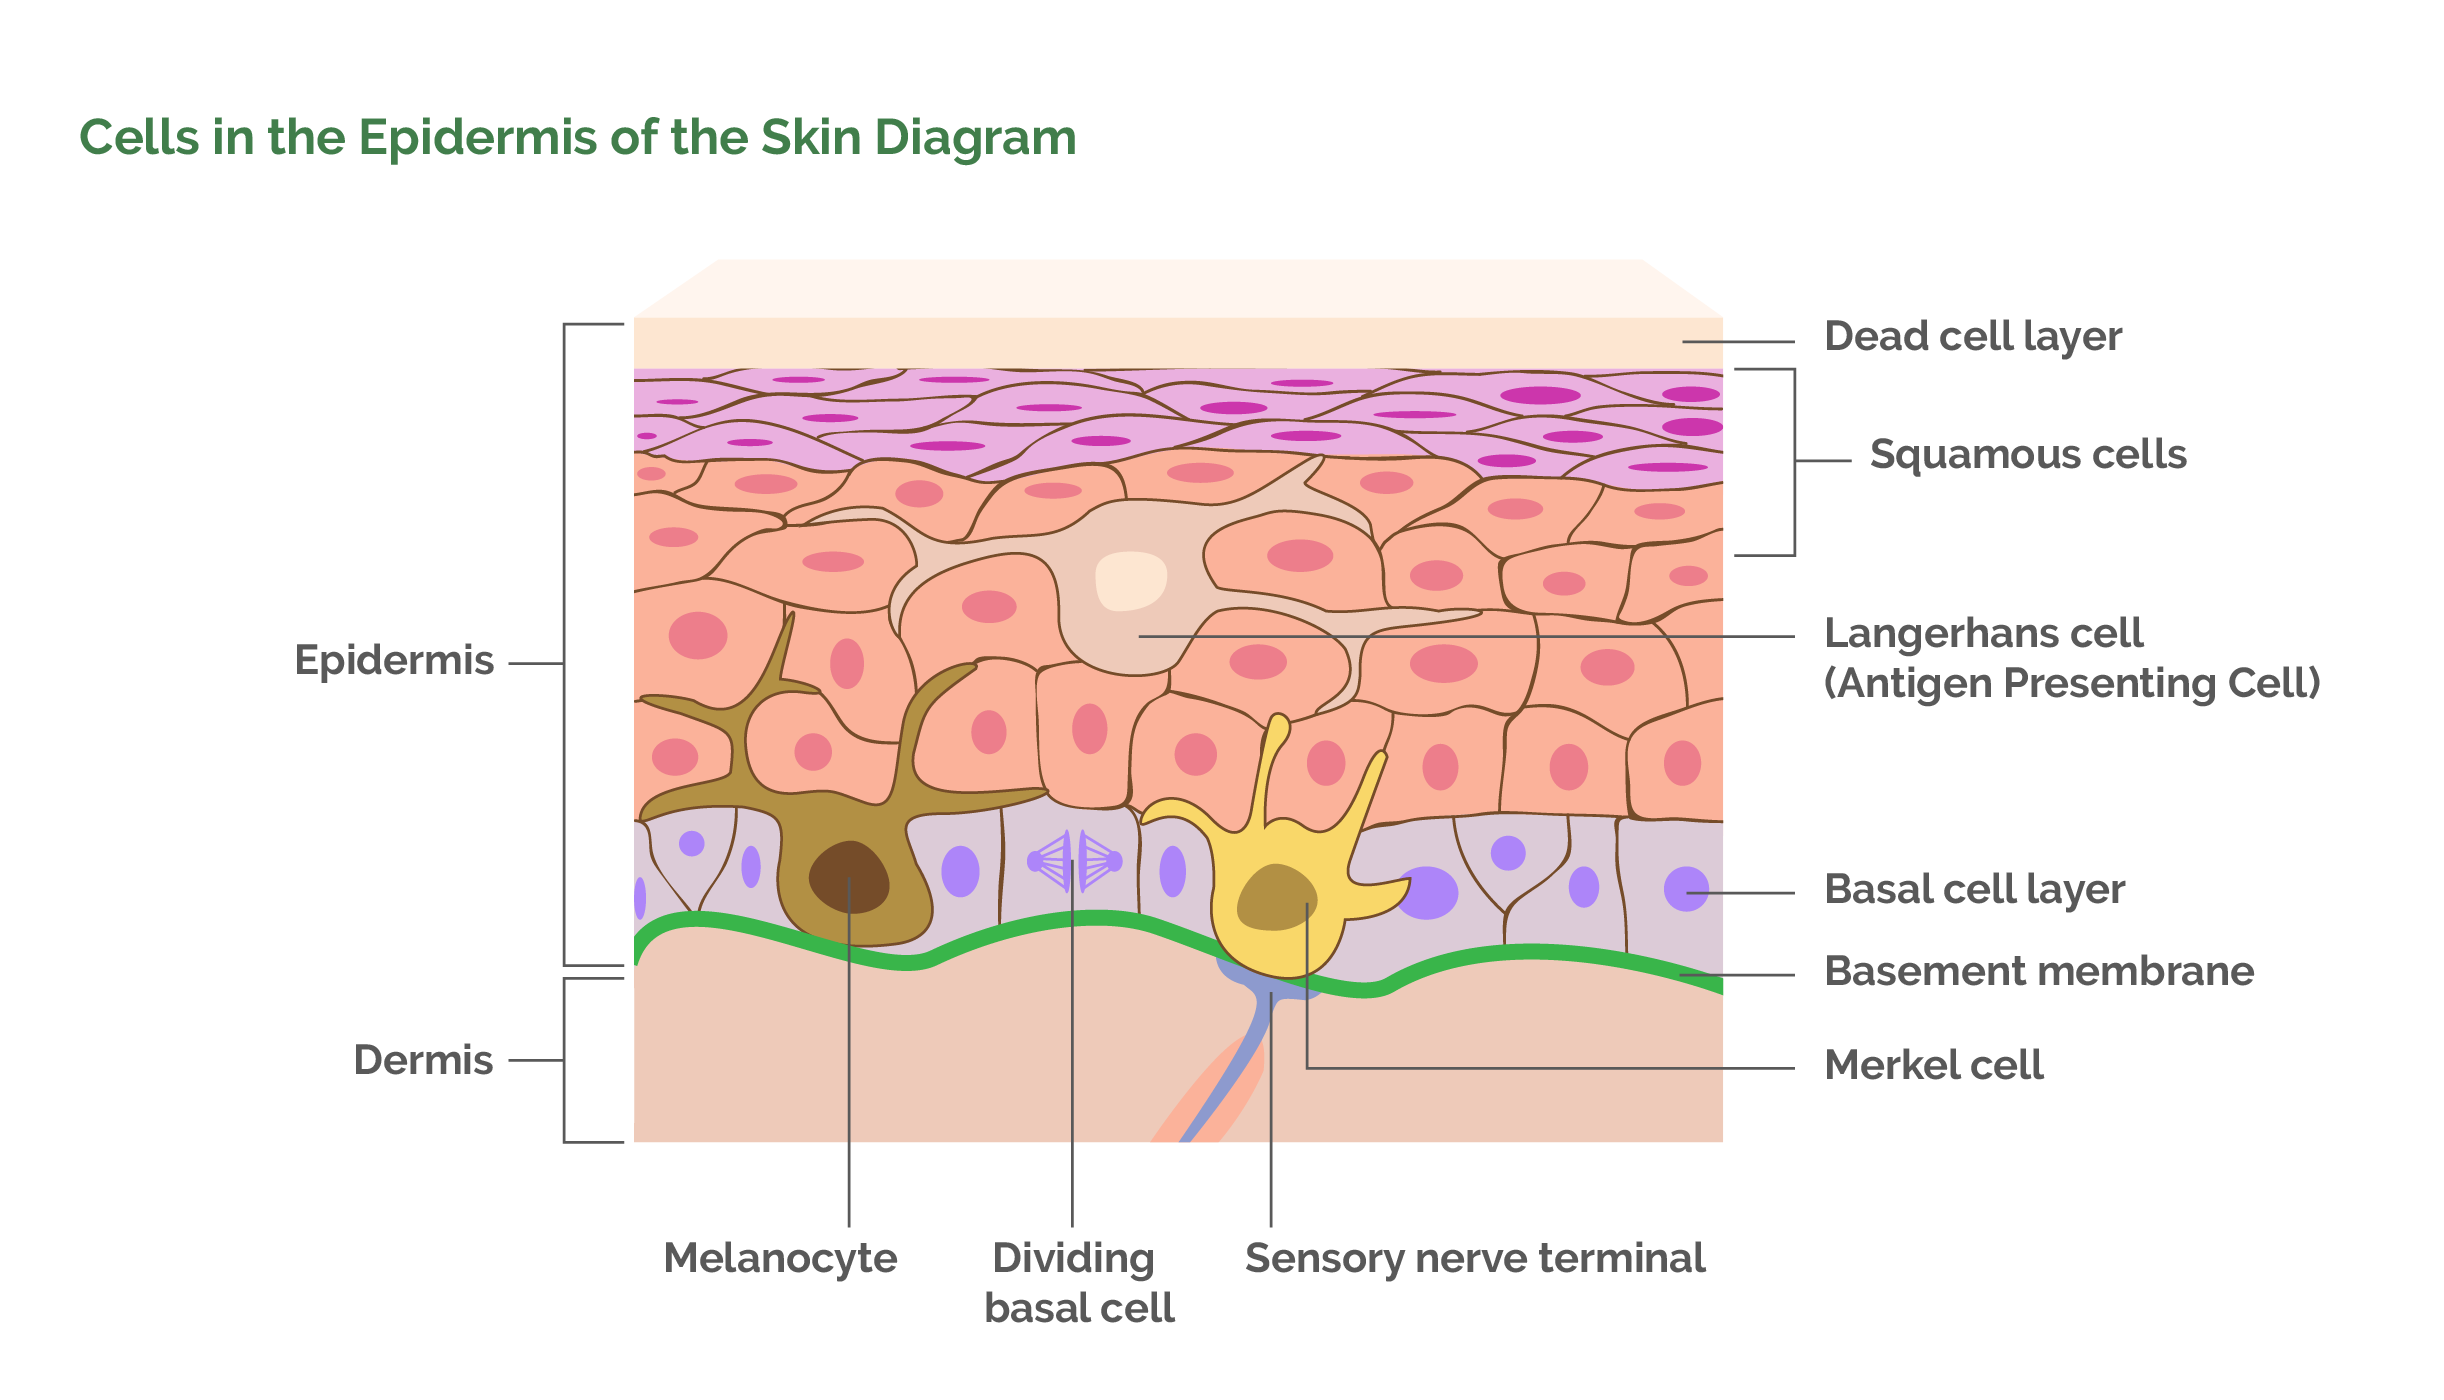 Cells in the Epidermis of the Skin Diagram